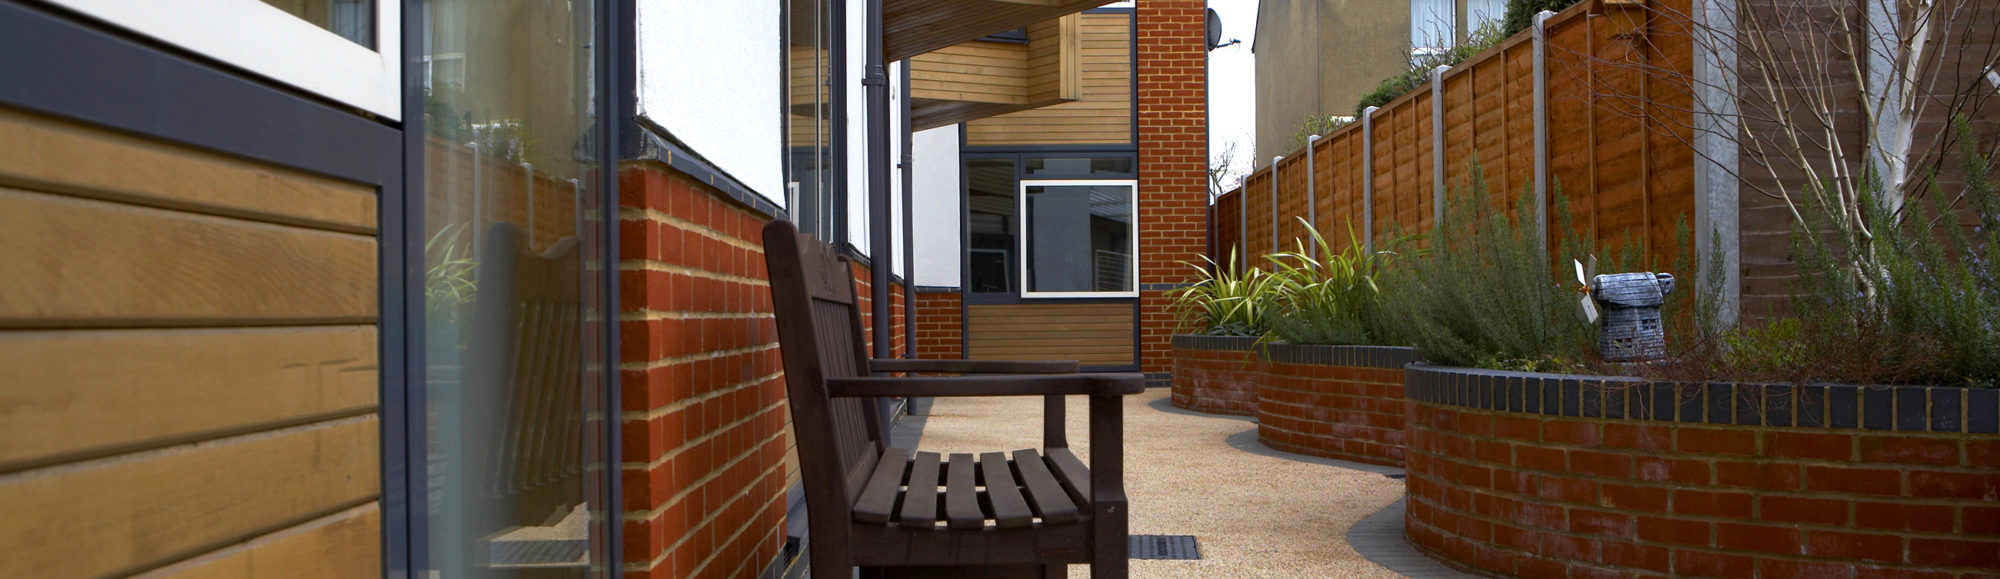 Livability Kenway Court outside building